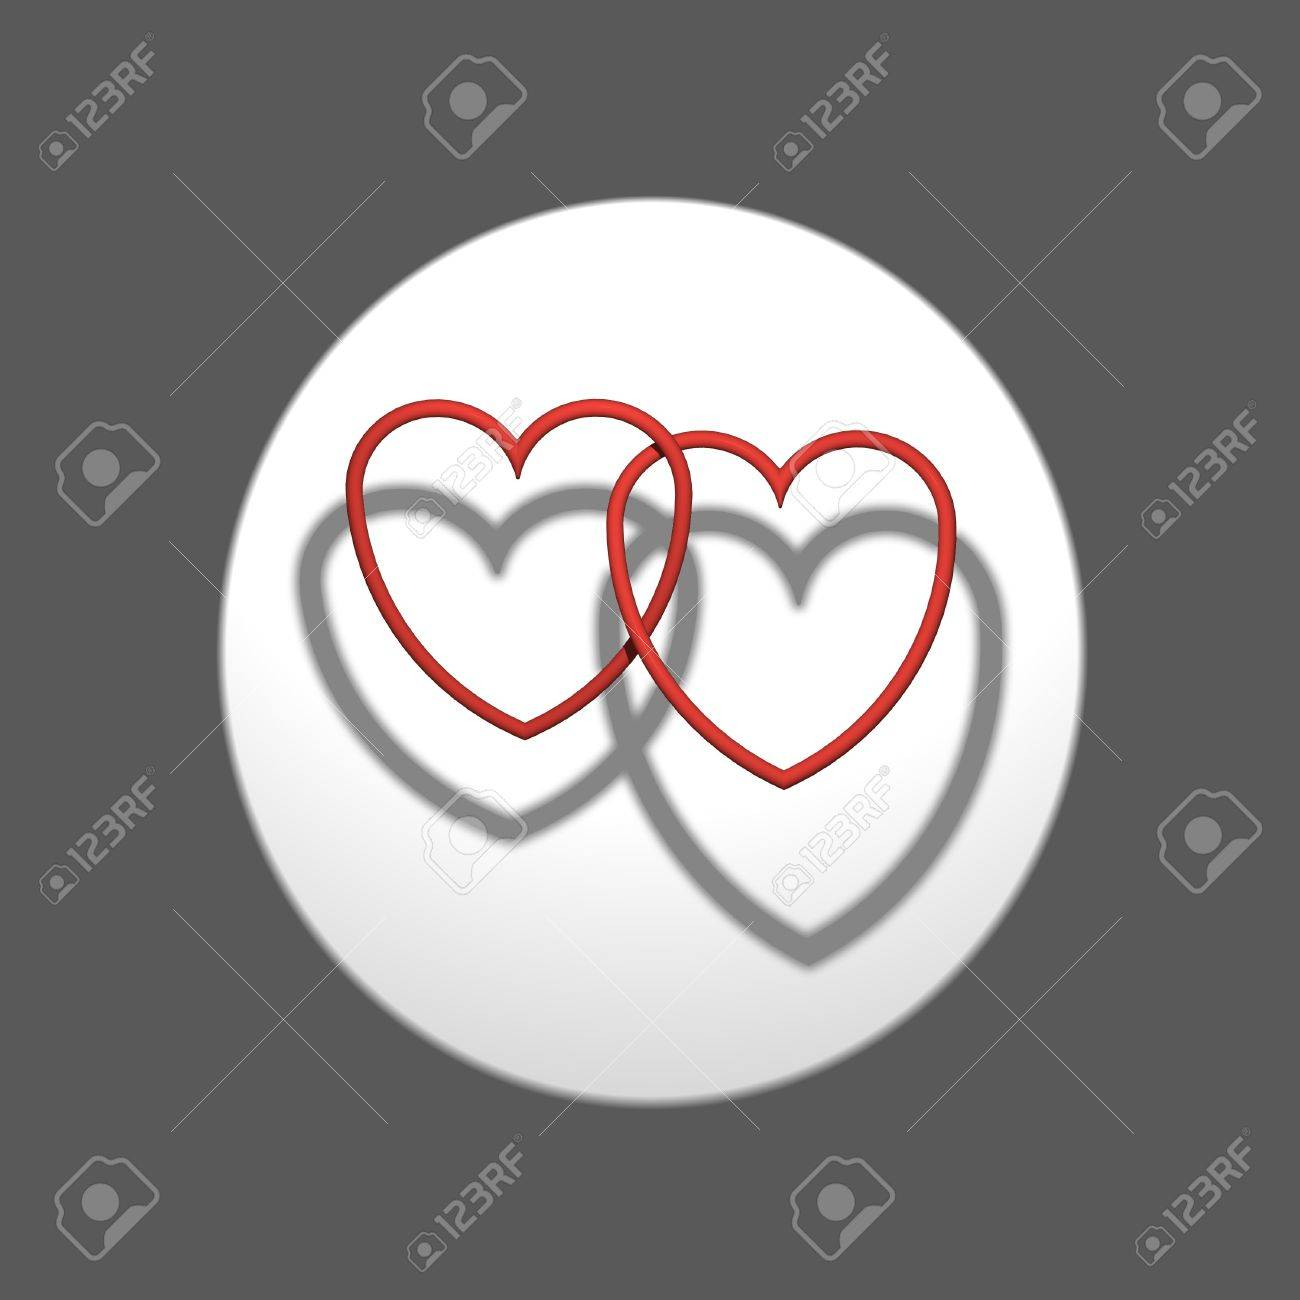 Two intertwined hearts projecting the shadow on background Stock Photo - 13812370